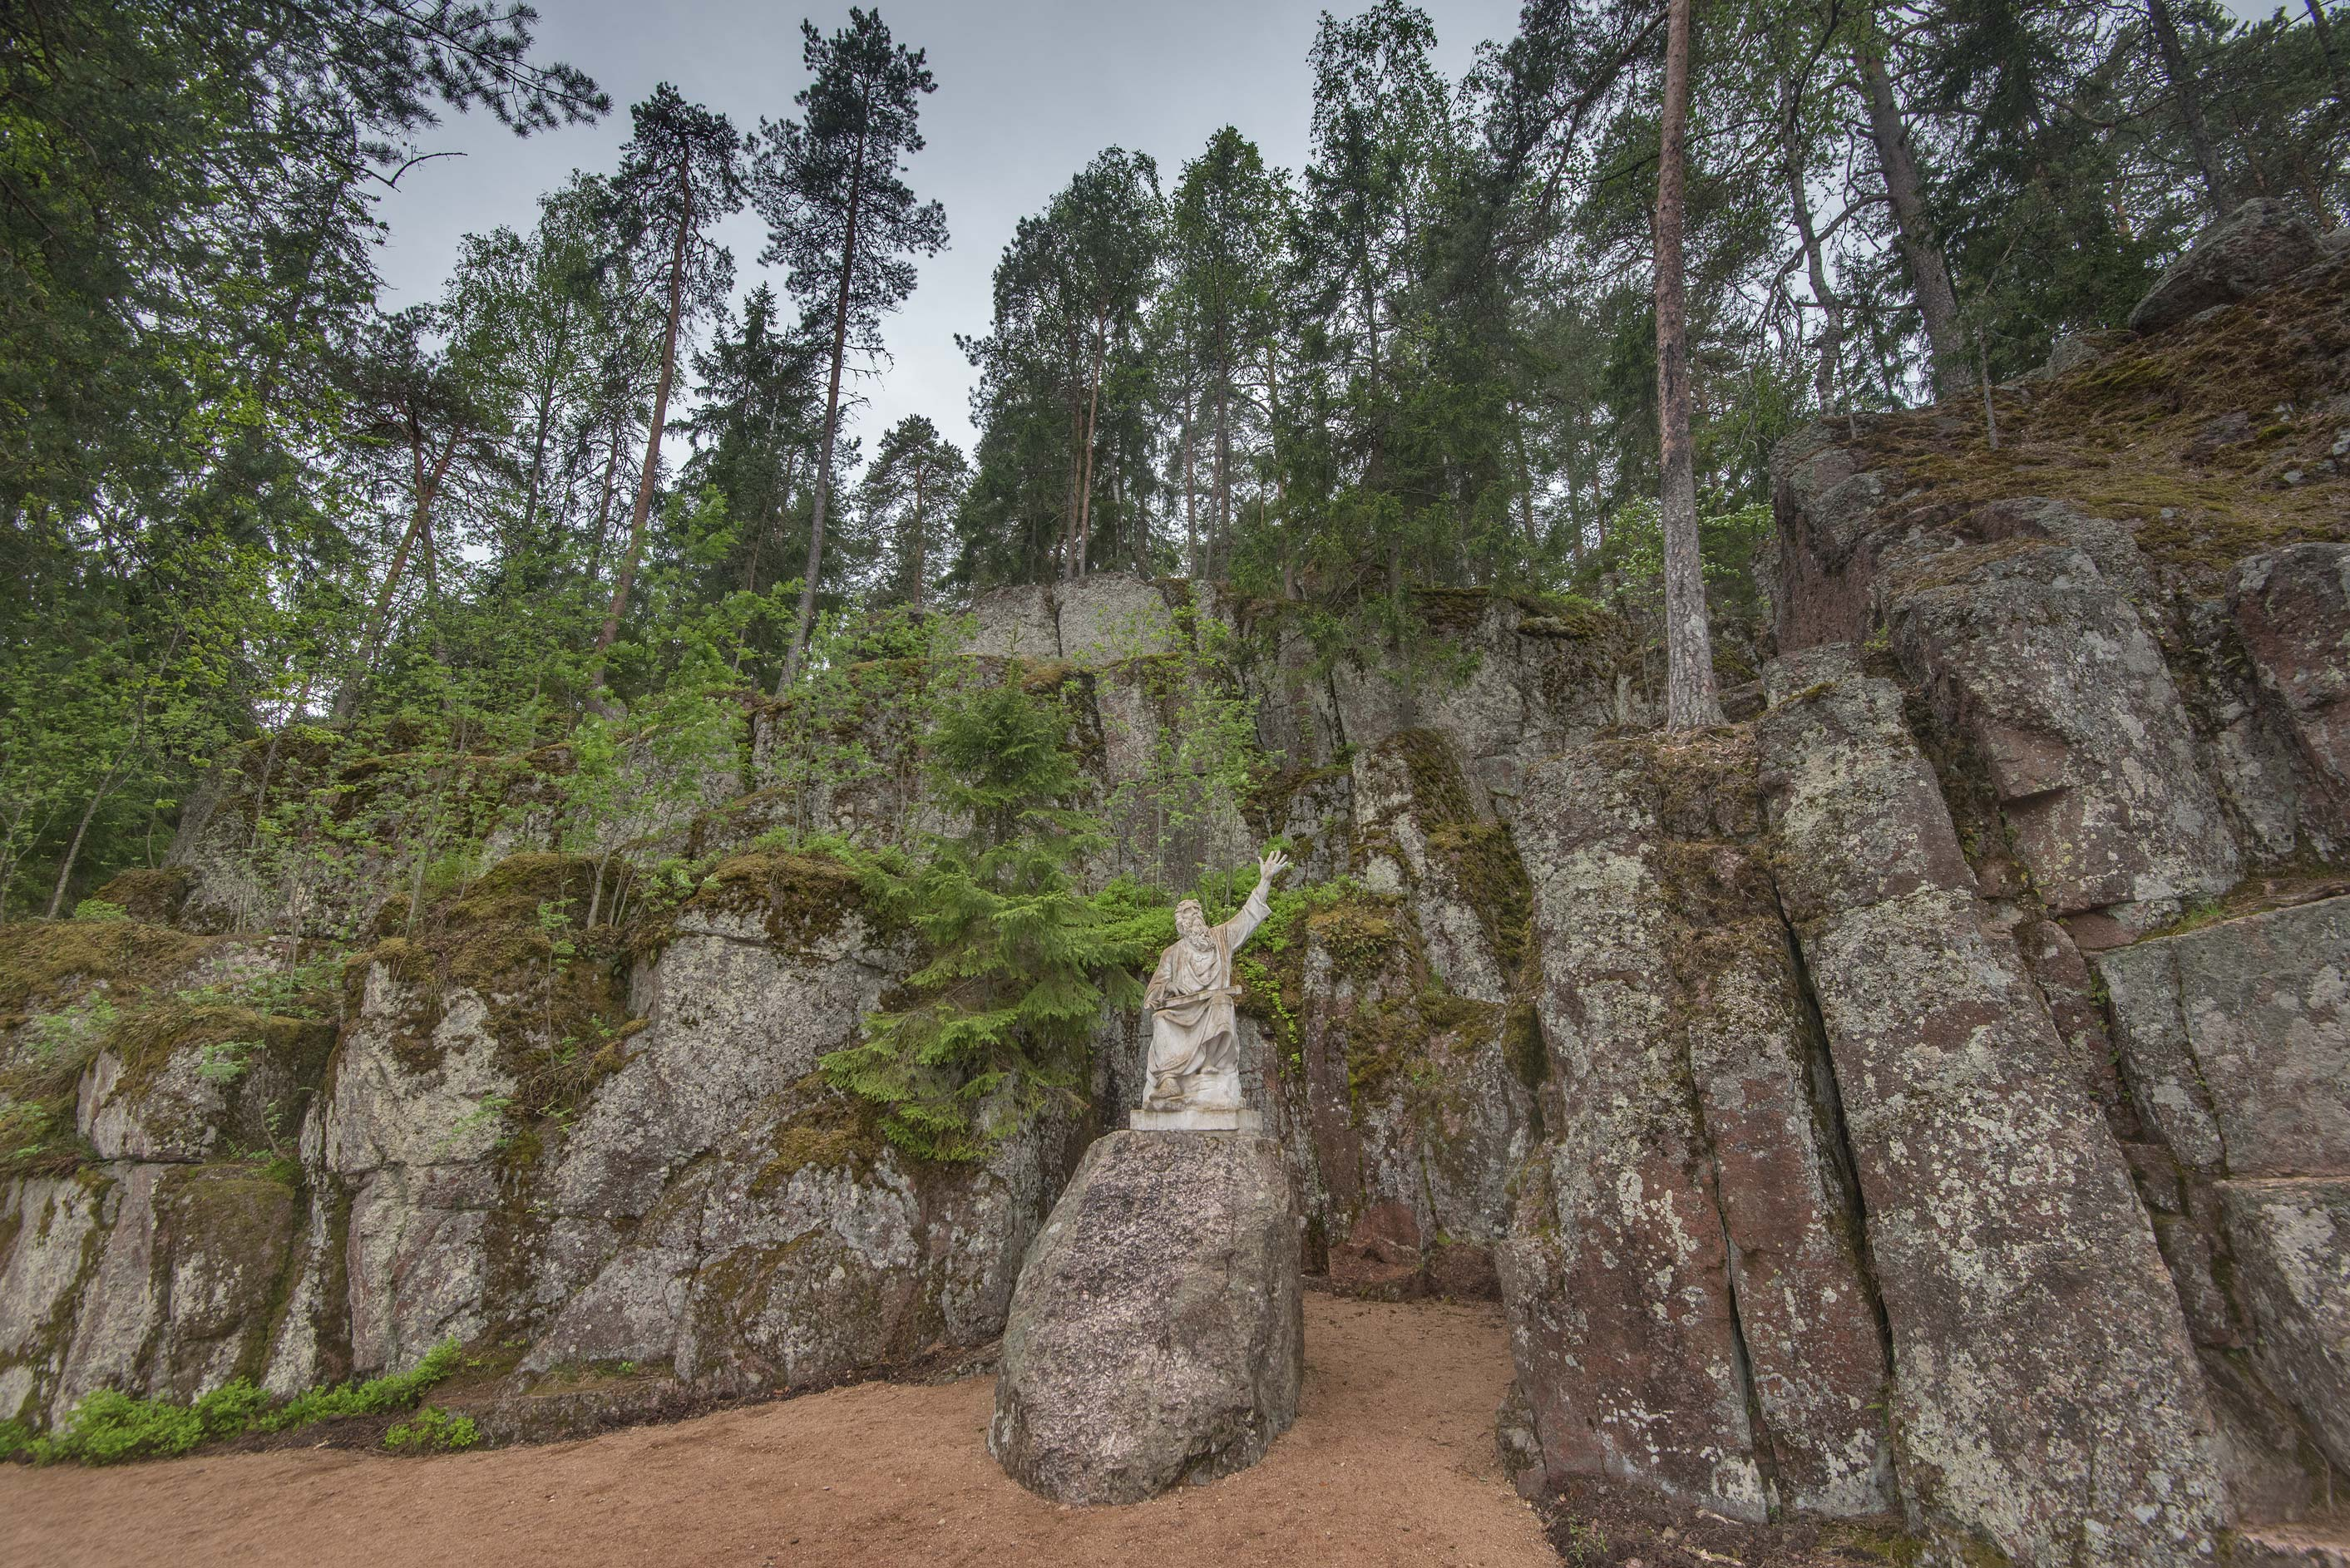 Song of Vainamoinen sculpture below granite cliffs in Monrepos Park in Vyborg. Russia